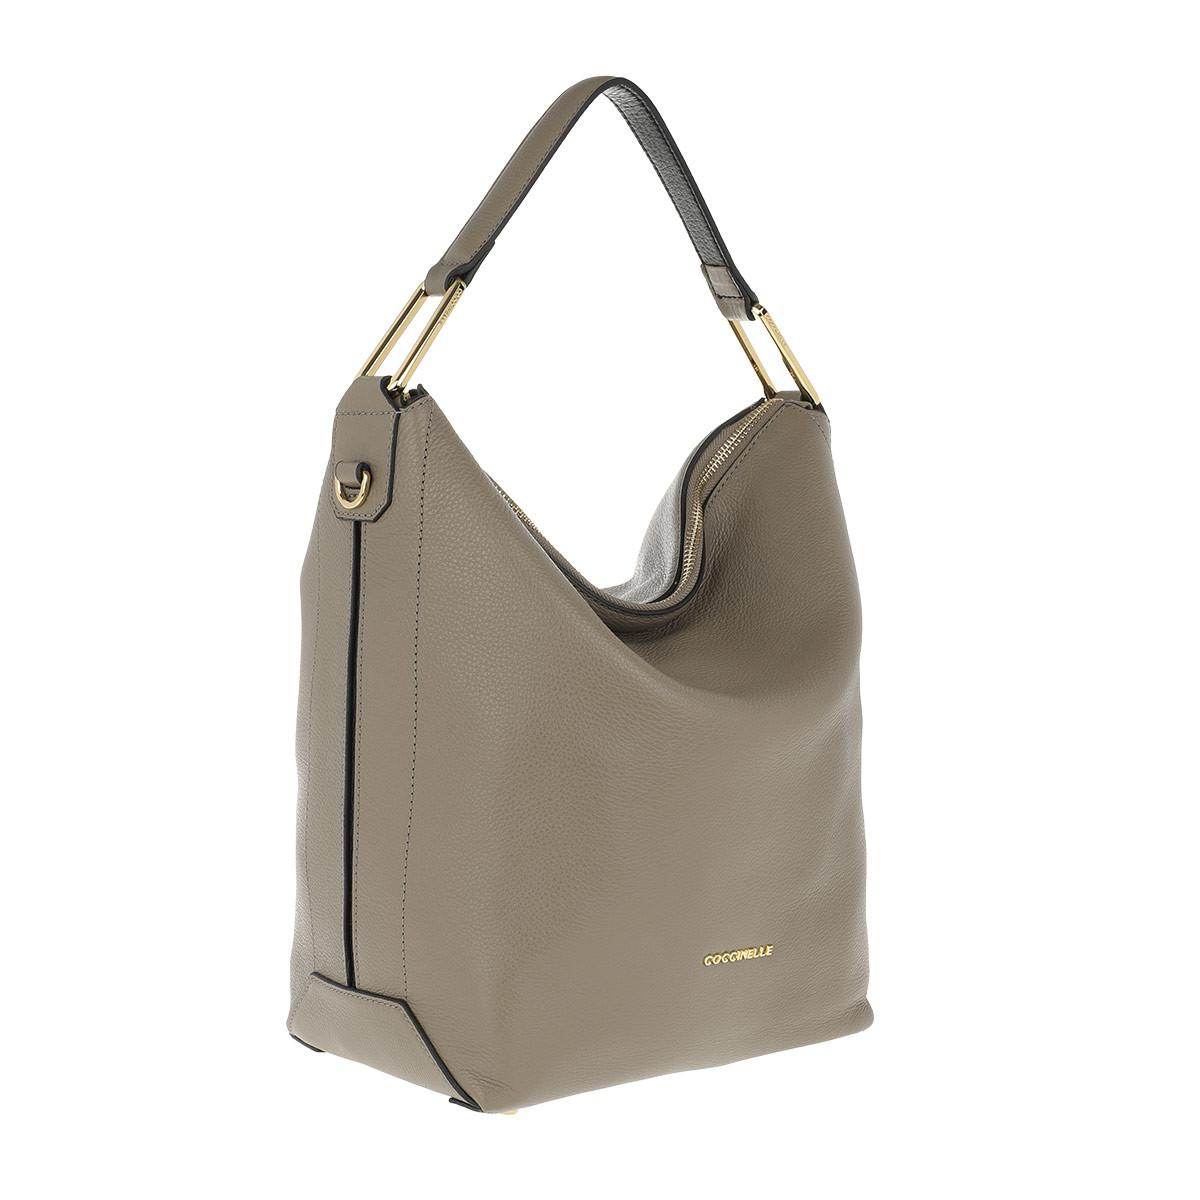 dea620877a34 Coccinelle Liya Leather Hobo Bag Taupe noir in Brown - Lyst